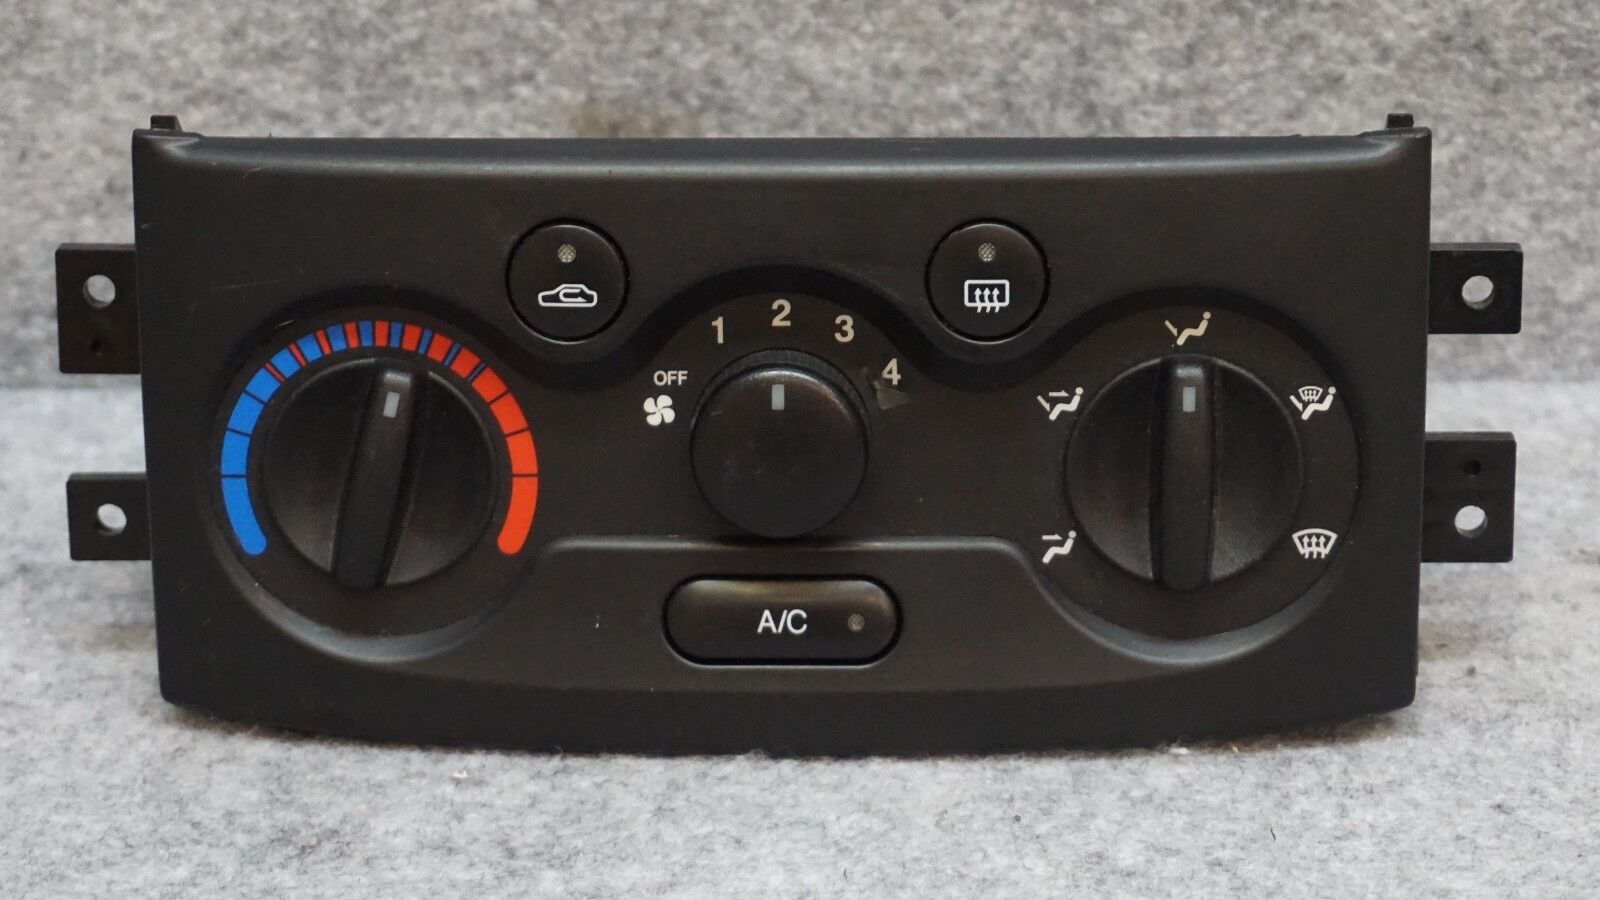 Used Daewoo A/C and Heater Controls for Sale